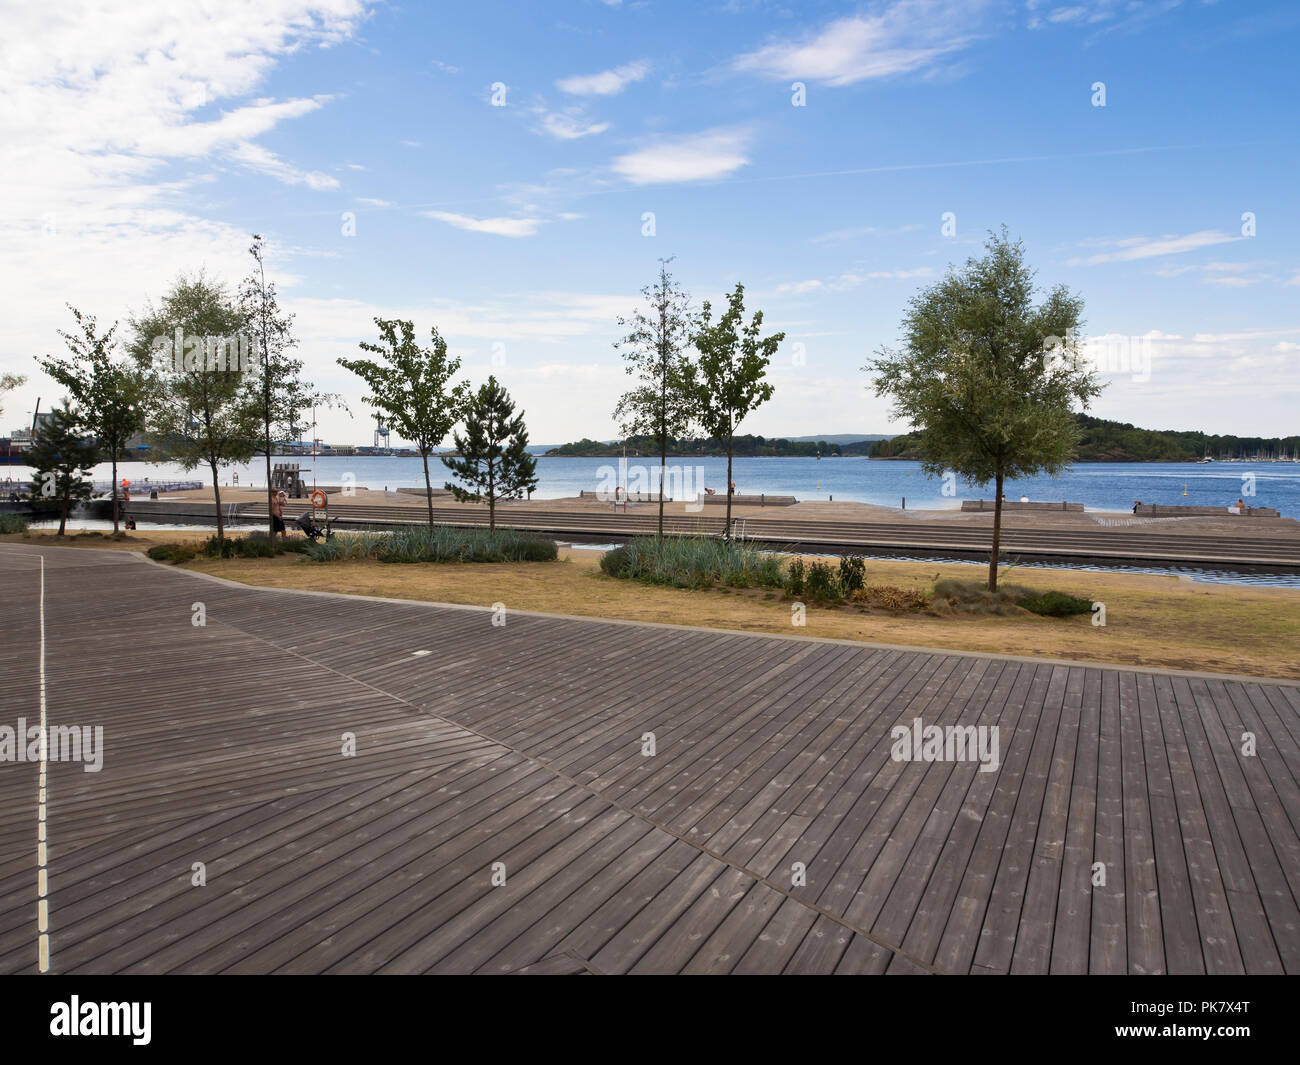 Beach and wooden sun-deck at Sorenga, the new residential neighborhood  in central Oslo Norway, early morning  on the Oslo fjord - Stock Image